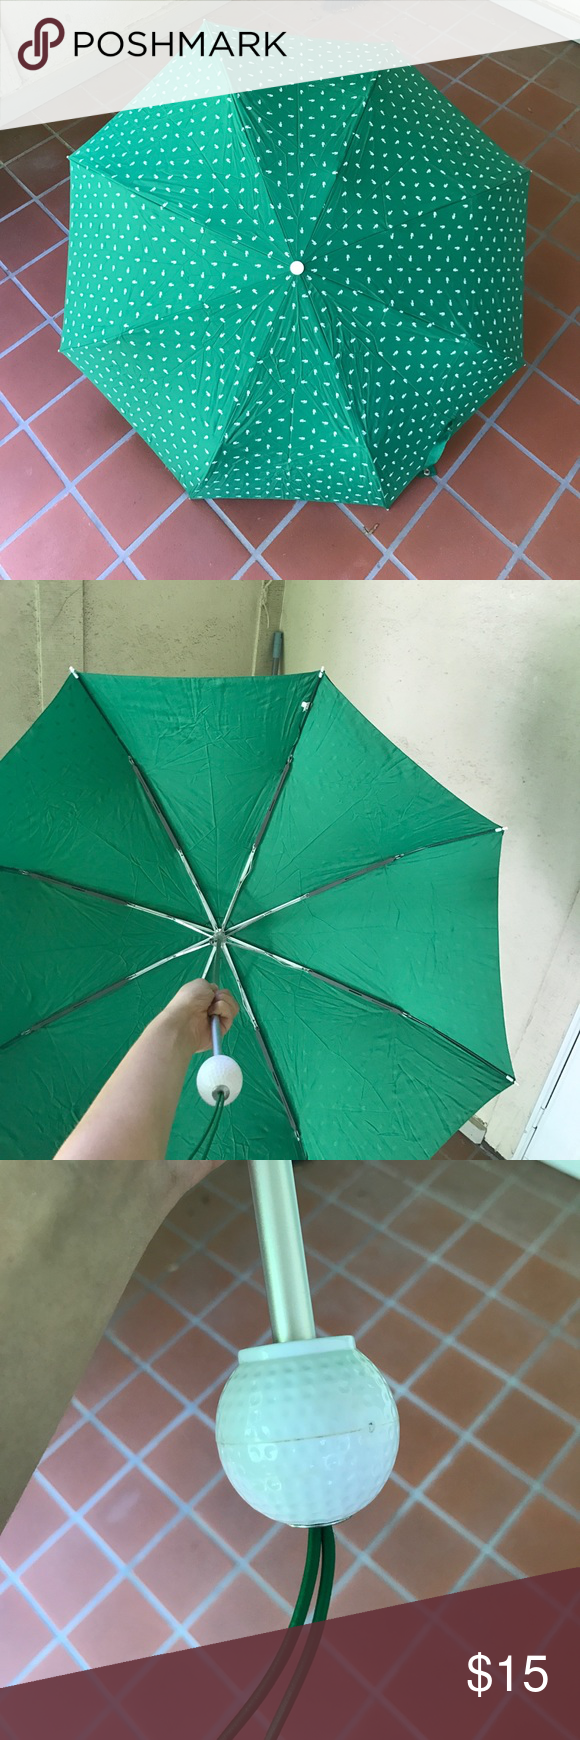 wholesale price authentic quality release date Lacoste Golf Umbrella Lacoste golf umbrella. Alligator ...